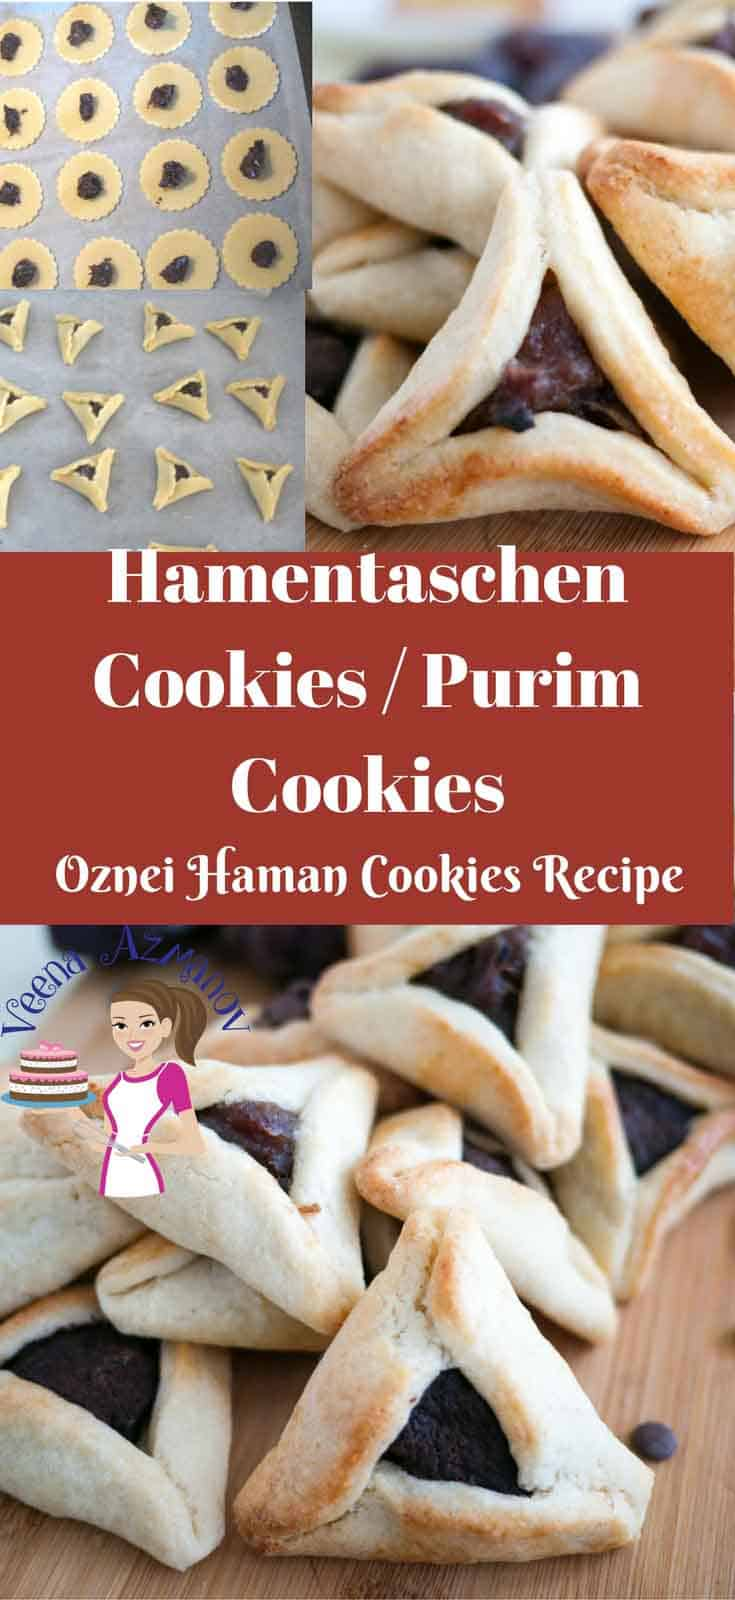 A Pinterest Optimized Image for Purim Cookies also know as Hamentaschen or Oznei Haman - with traditional as well as some modern filling